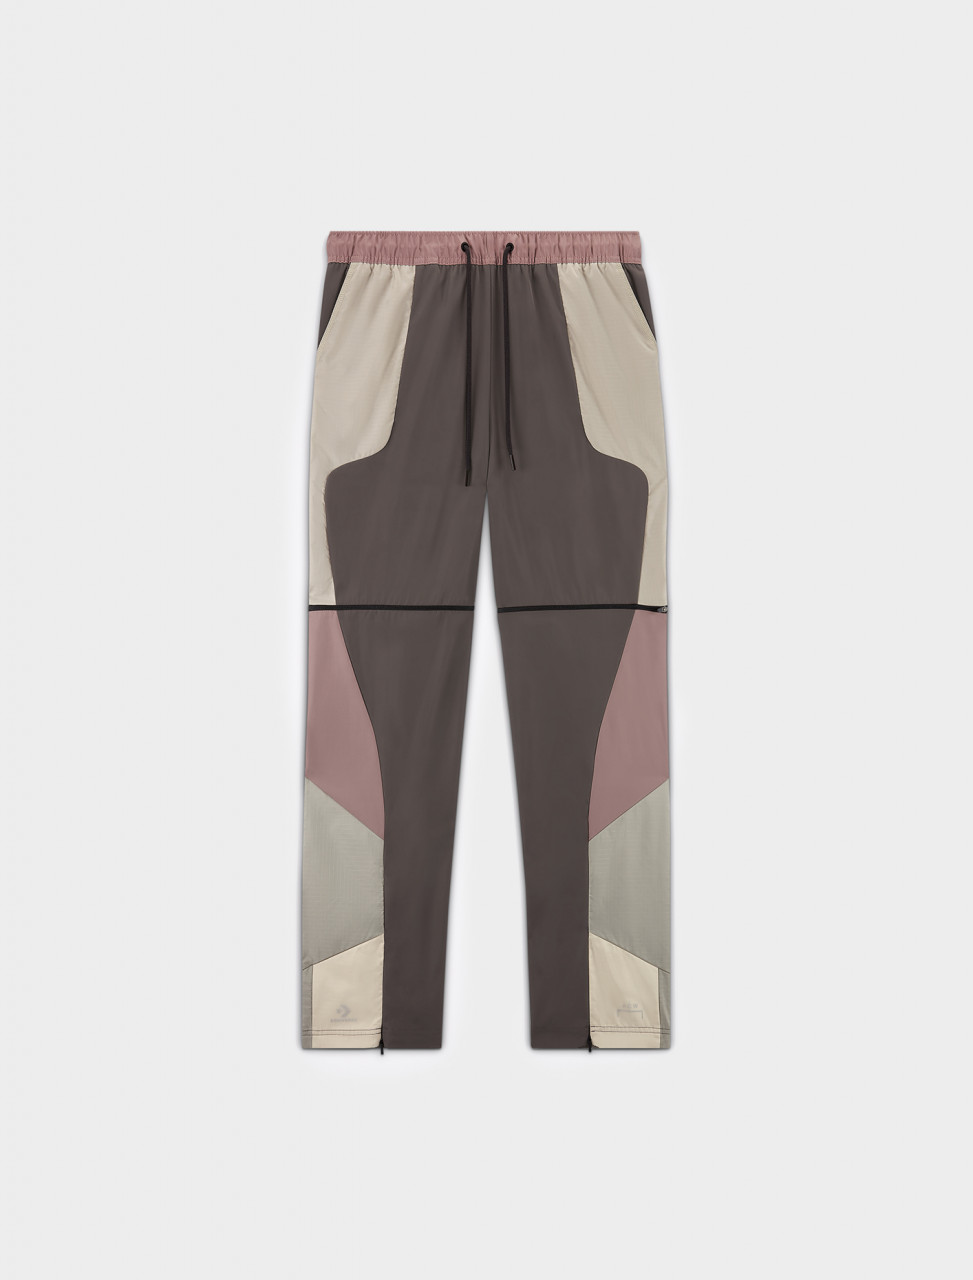 221-10019284-A01-035 CONVERSE X A COLD WALL TRACK PANT